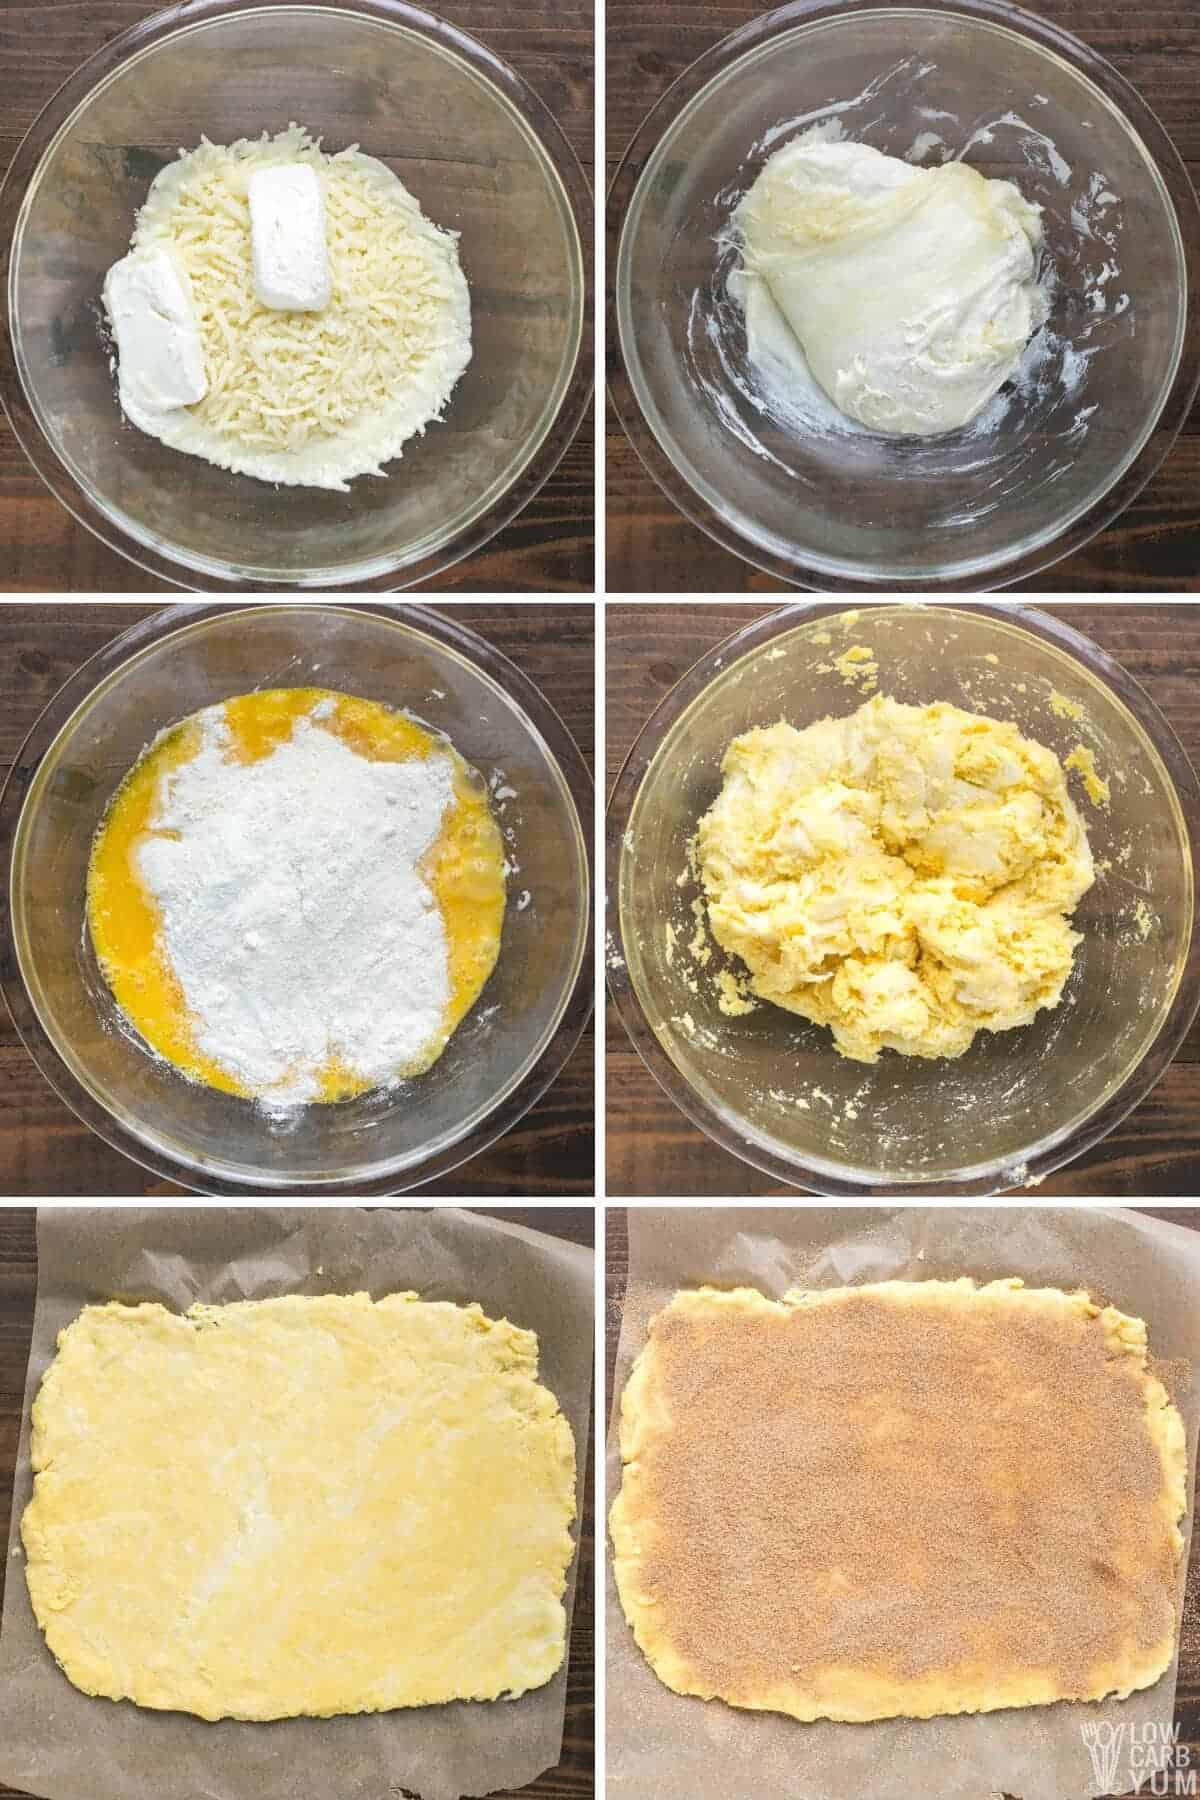 steps showing how to make the fathead cinnamon roll dough